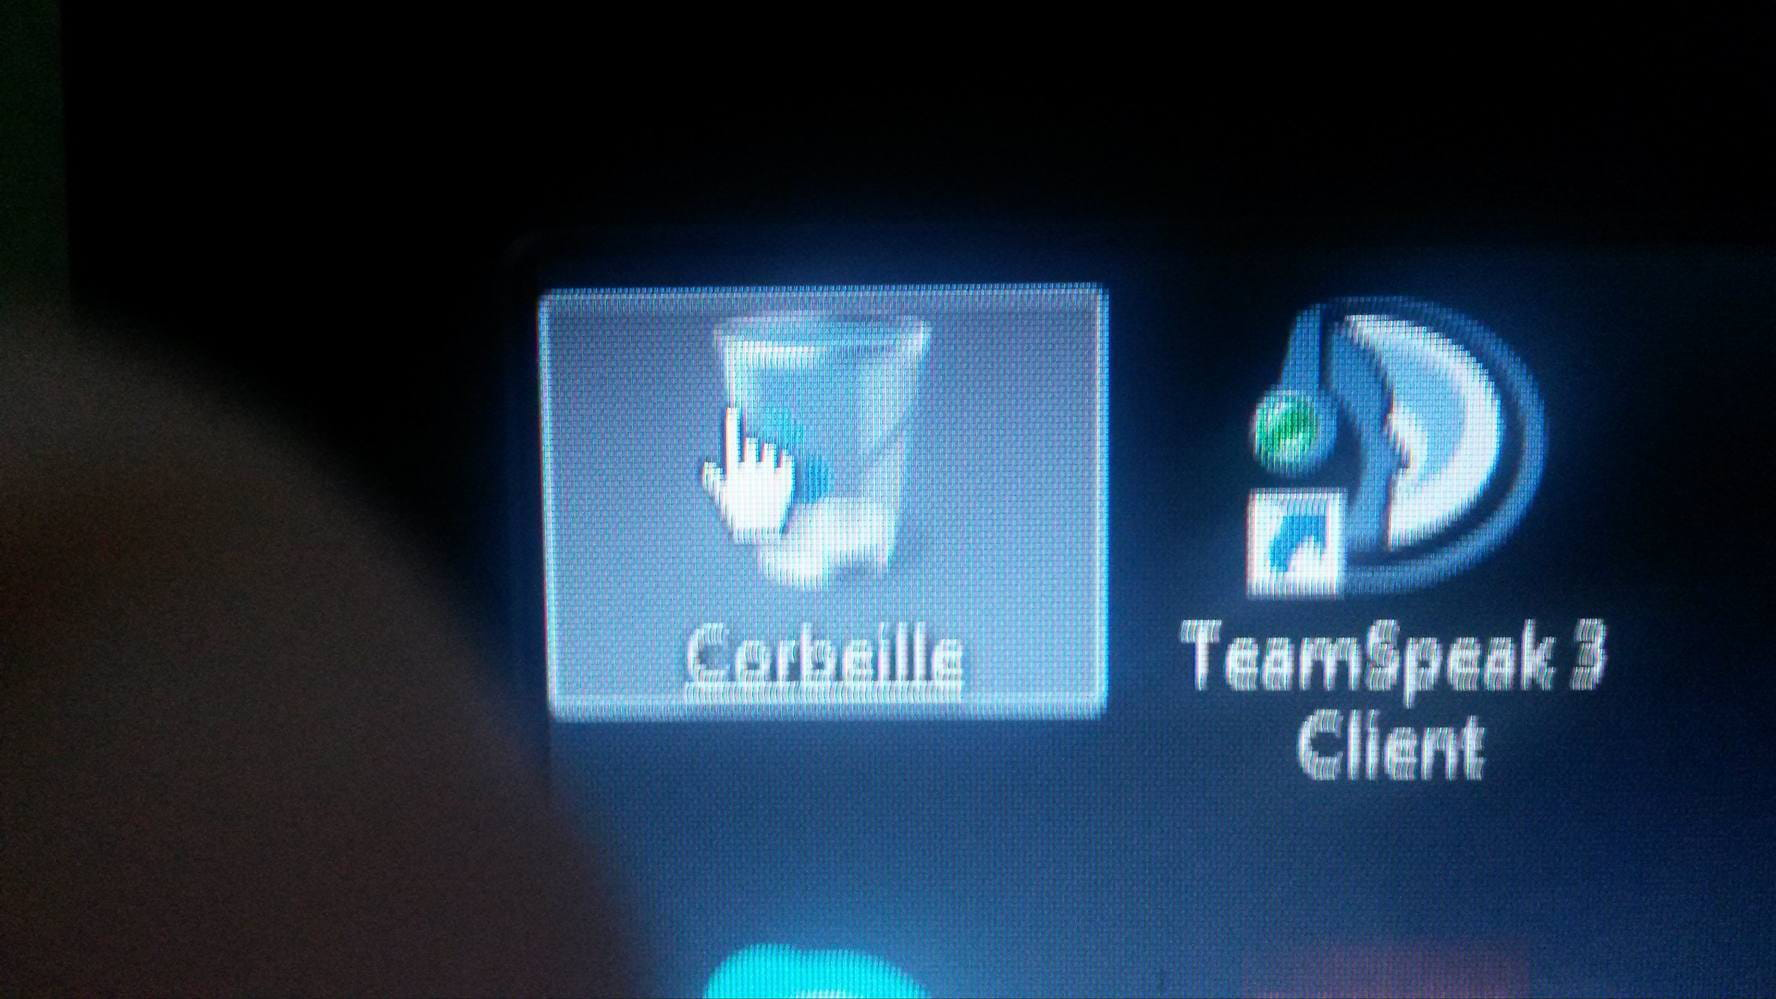 Probl me avec les icones sur le bureau windows 7 - Icone bureau disparu windows 7 ...